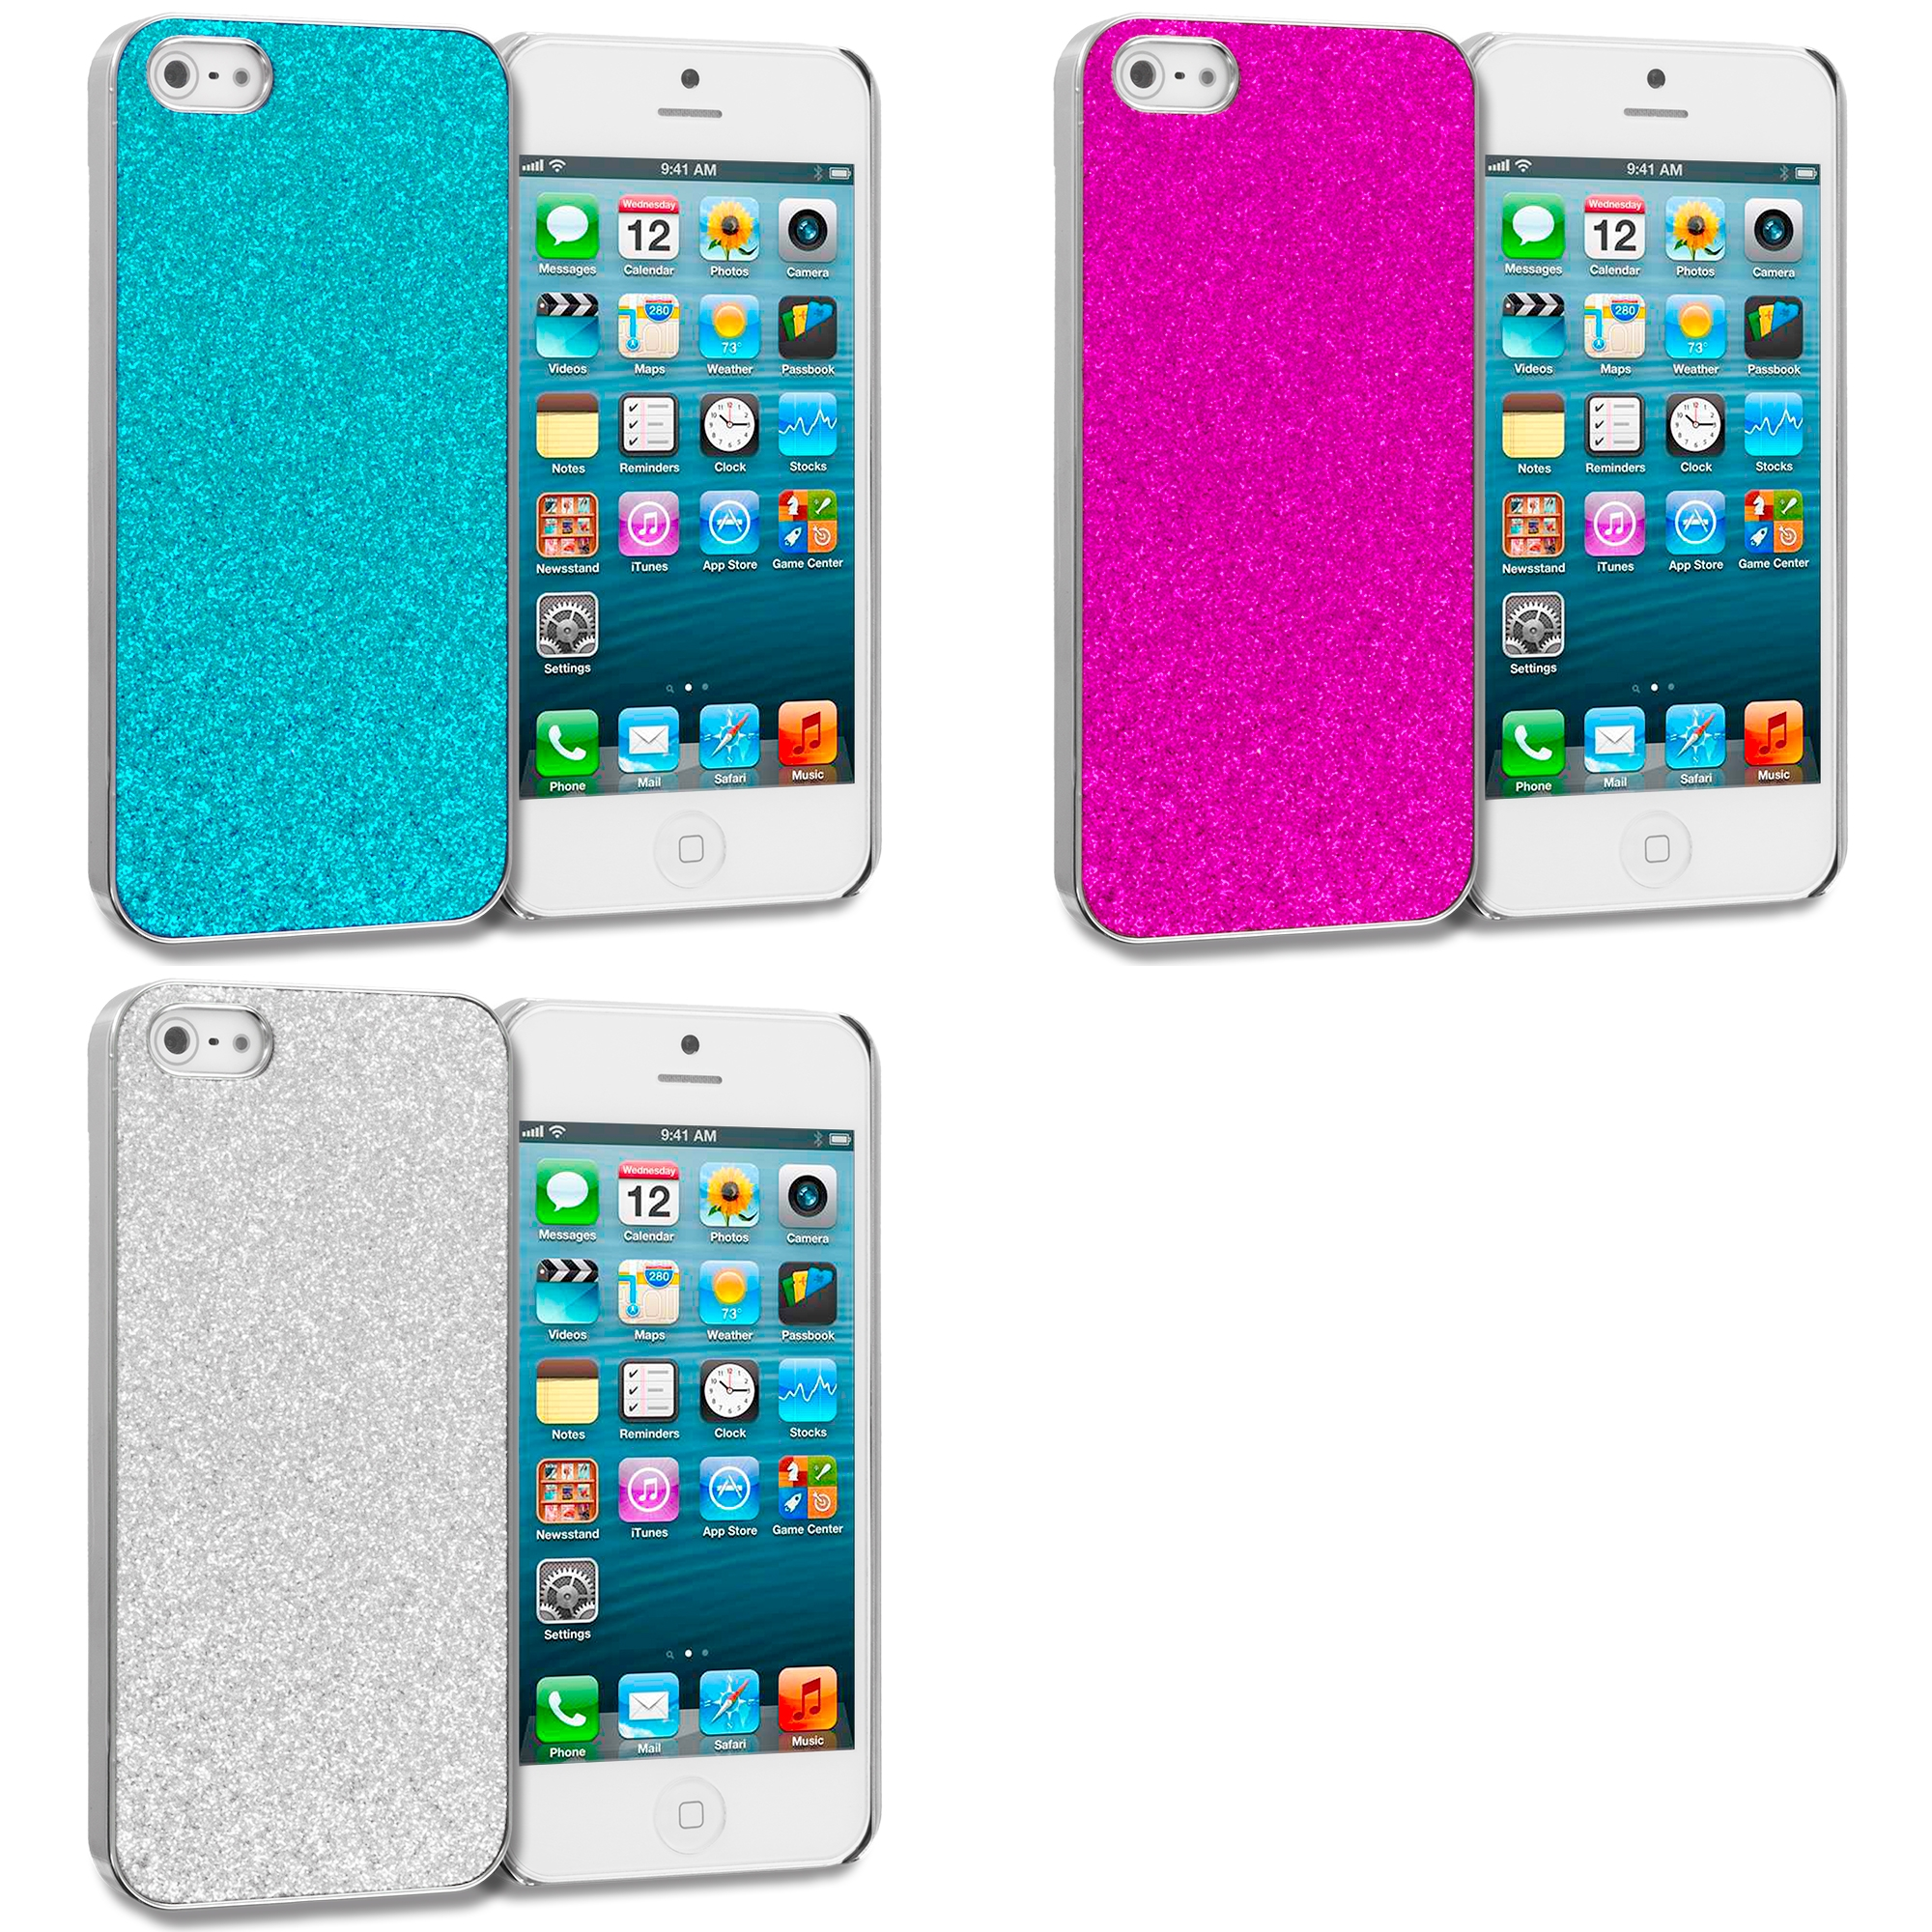 Apple iPhone 5/5S/SE Combo Pack : Baby Blue Glitter Case Cover